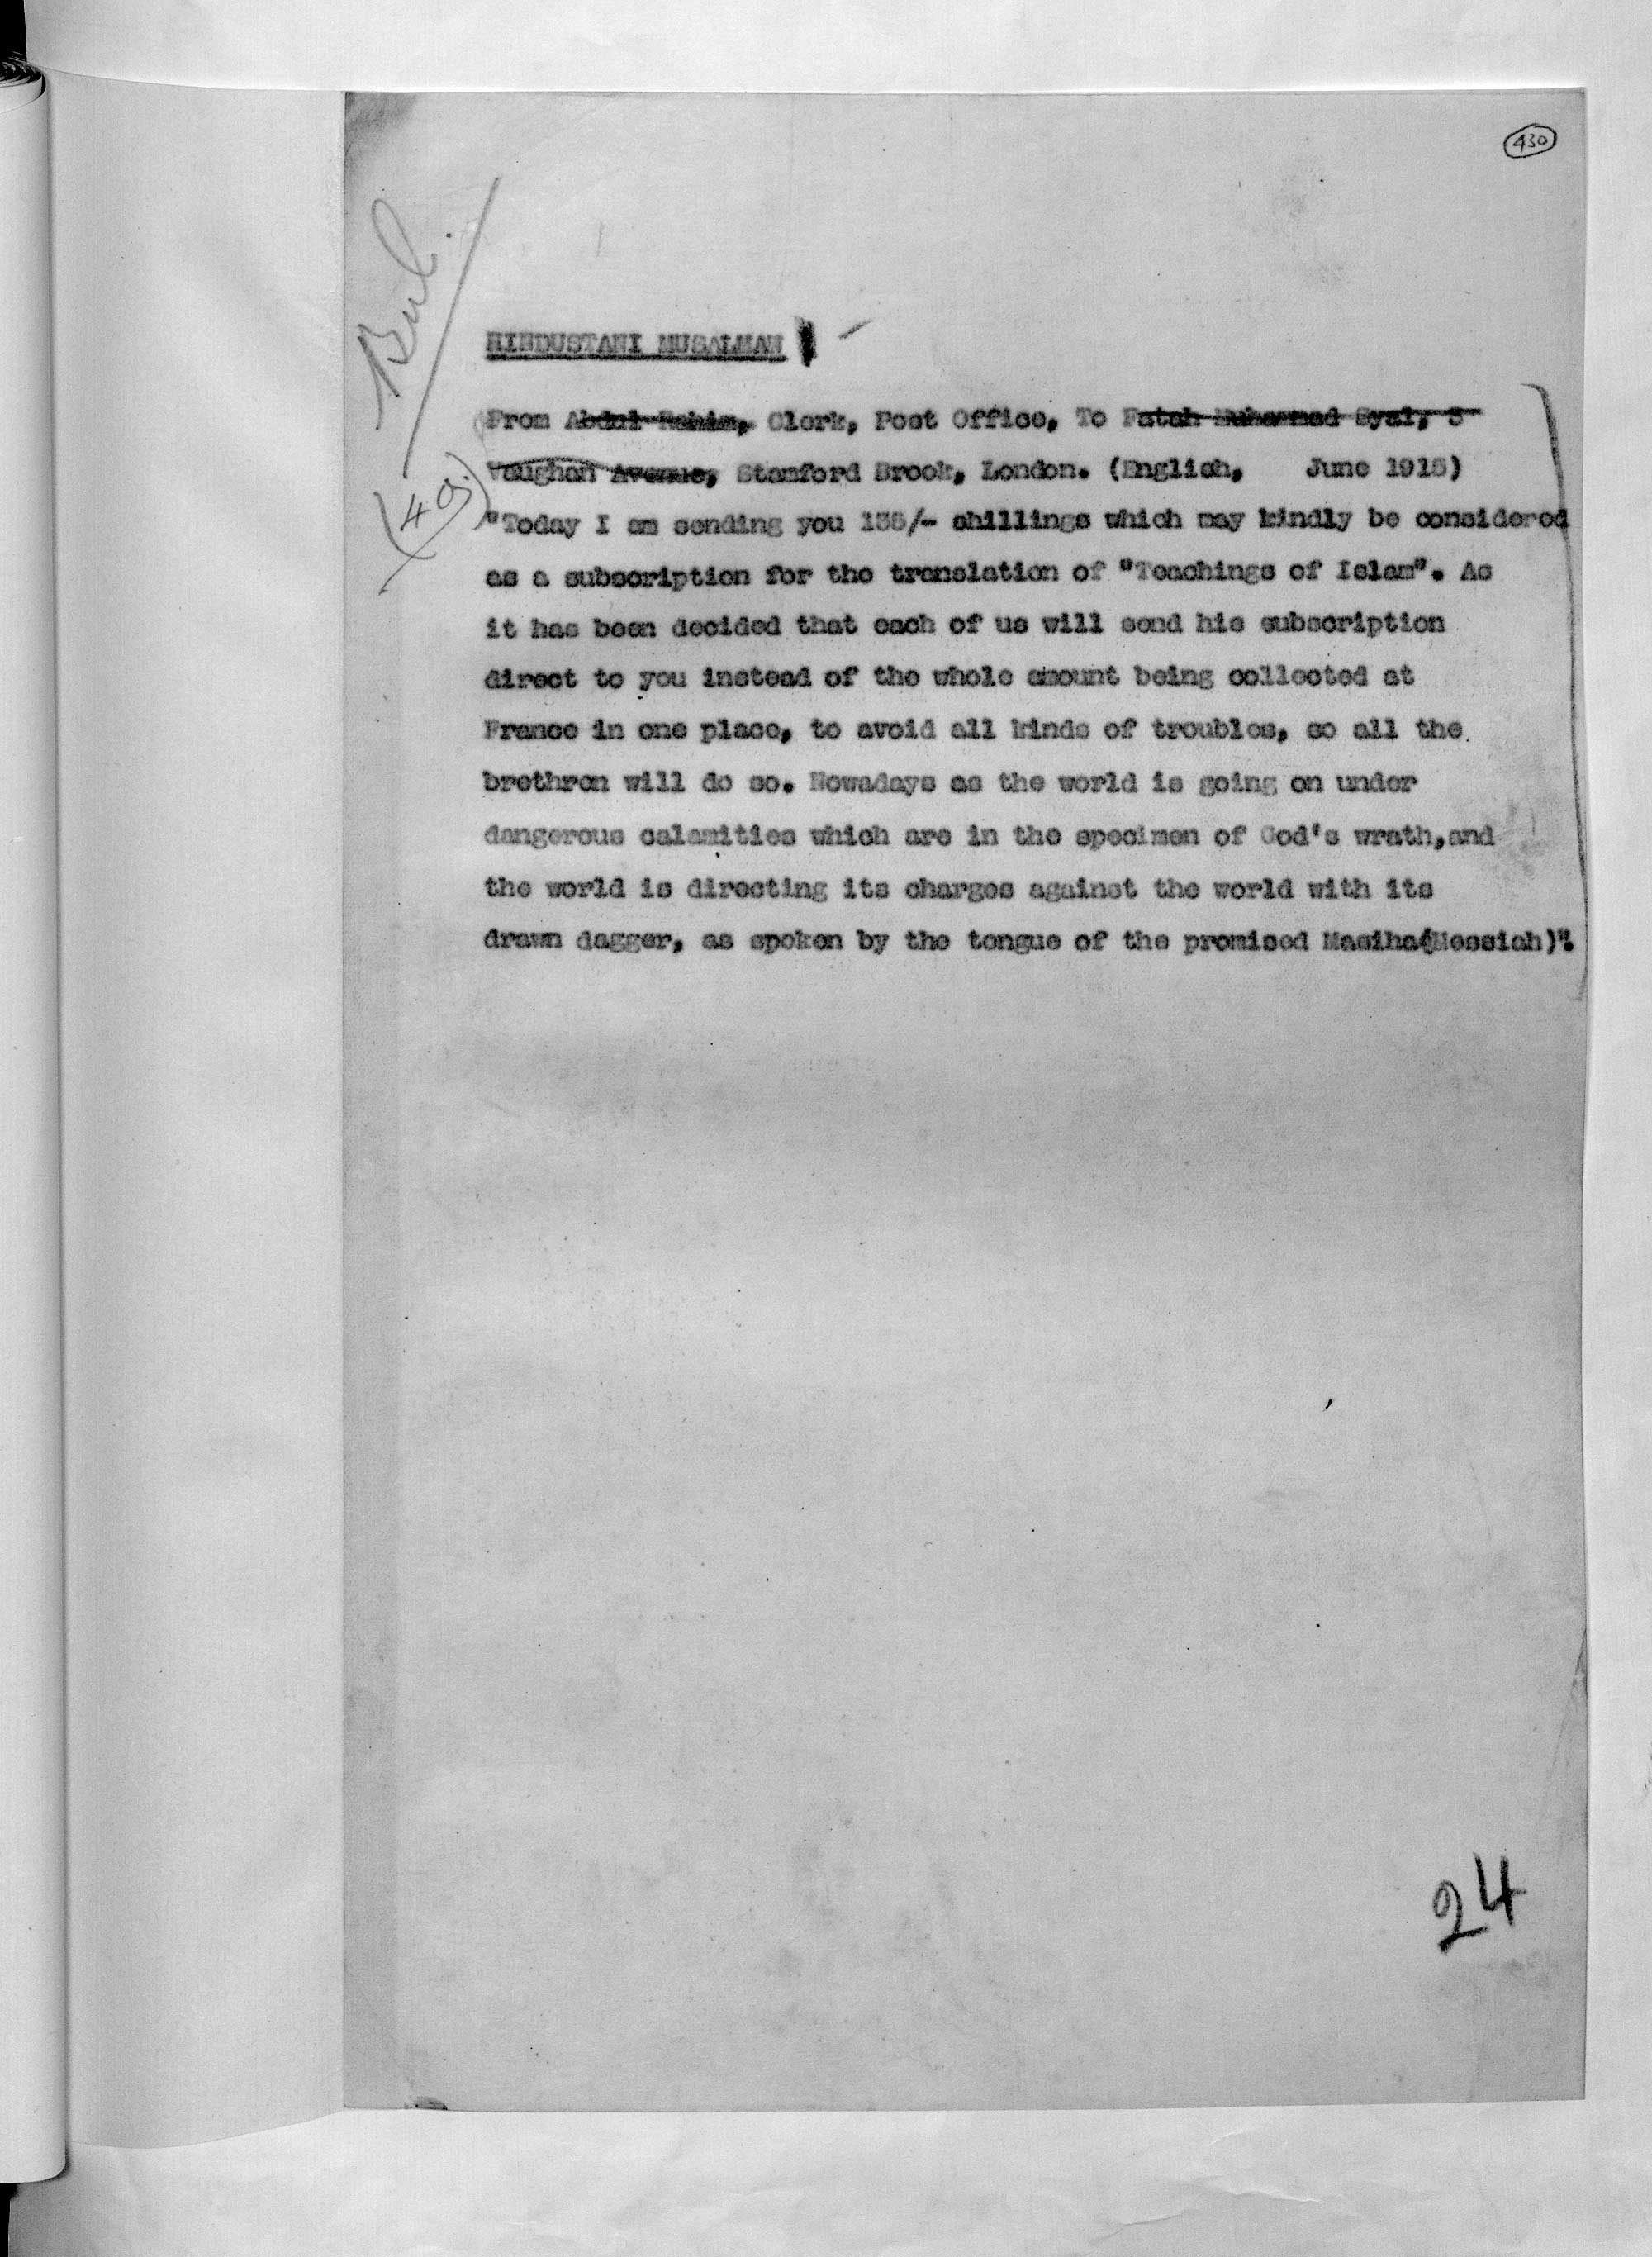 This letter by Indian Post Office clerk, Abdul Rahim, mentions a translation of the work 'The Teachings of Islam'. This was seen by the Censor of Indian Mail as an attempt to spread Islam in France.